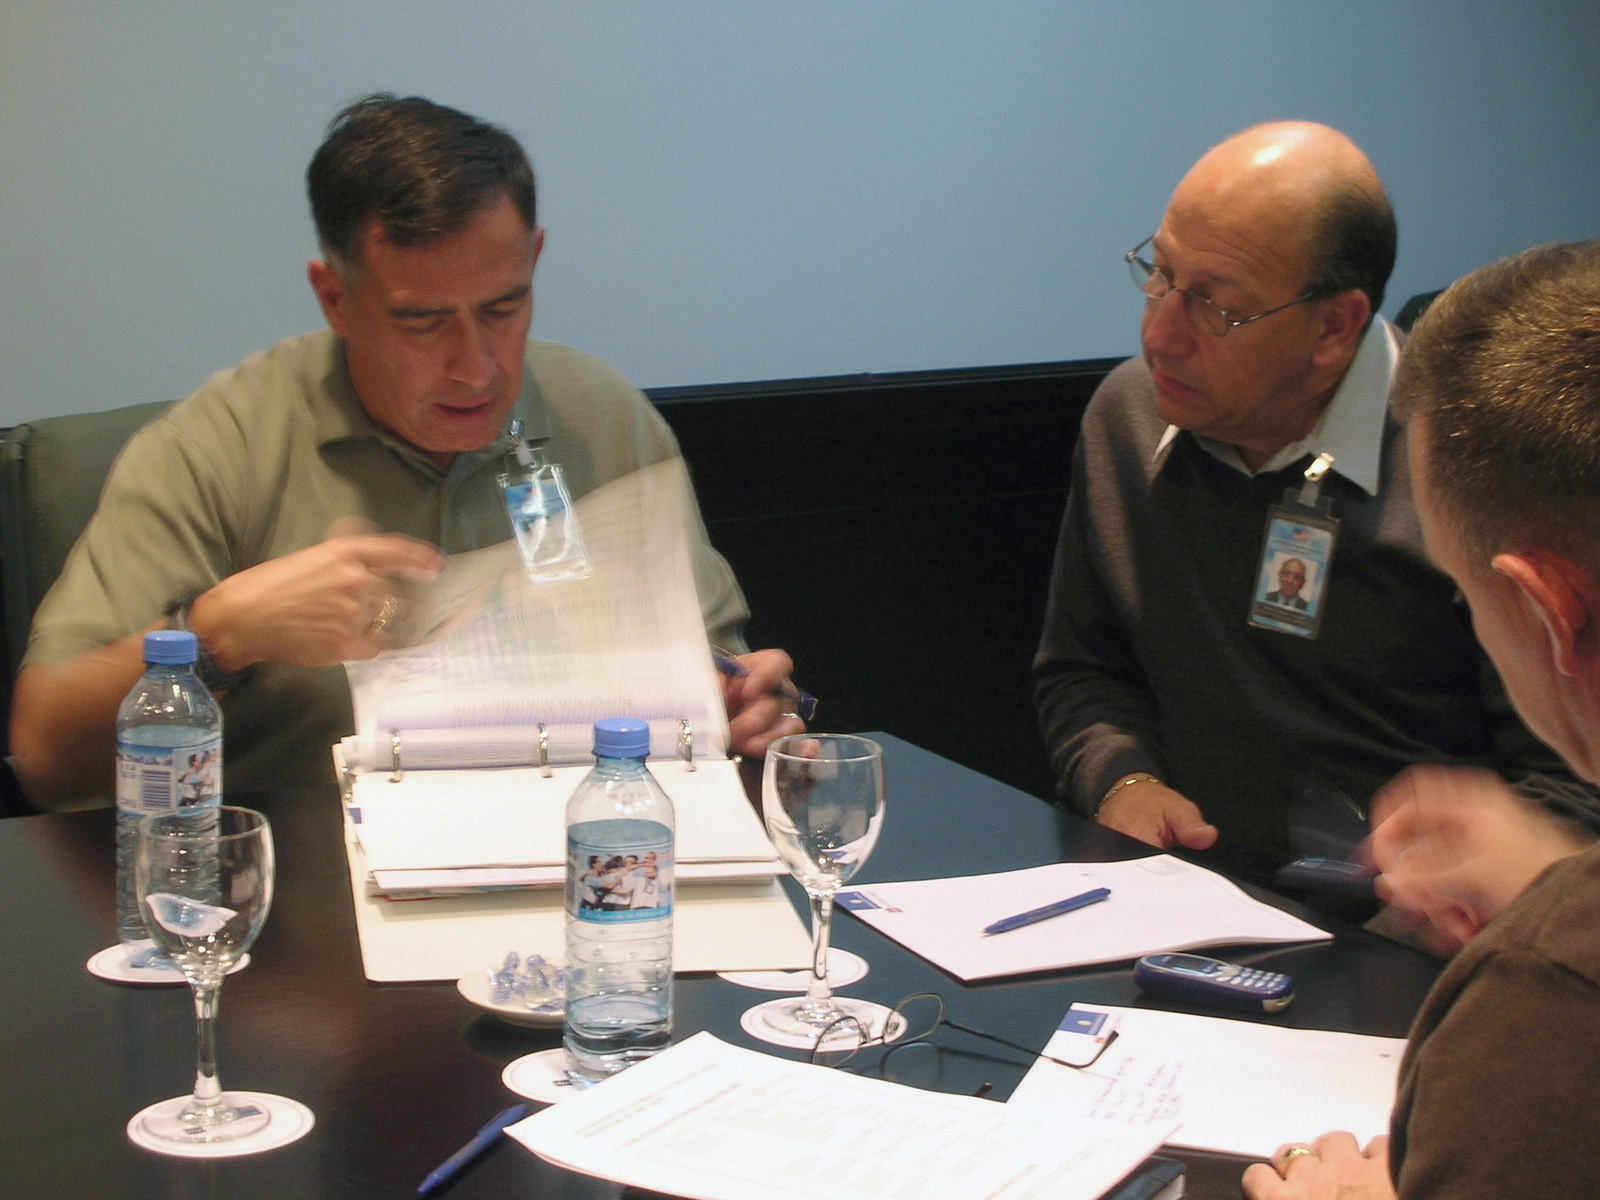 Network Enterprise Technology Command (NETCOM) Operations Commander, US Army (USA) Colonel (COL) David Lopez (left), goes over some notes with Enrique Labrador, USA G-5, during the Preparatory Conference of the Conference of American Armies in Buenos Aires, Argentina (ARG)